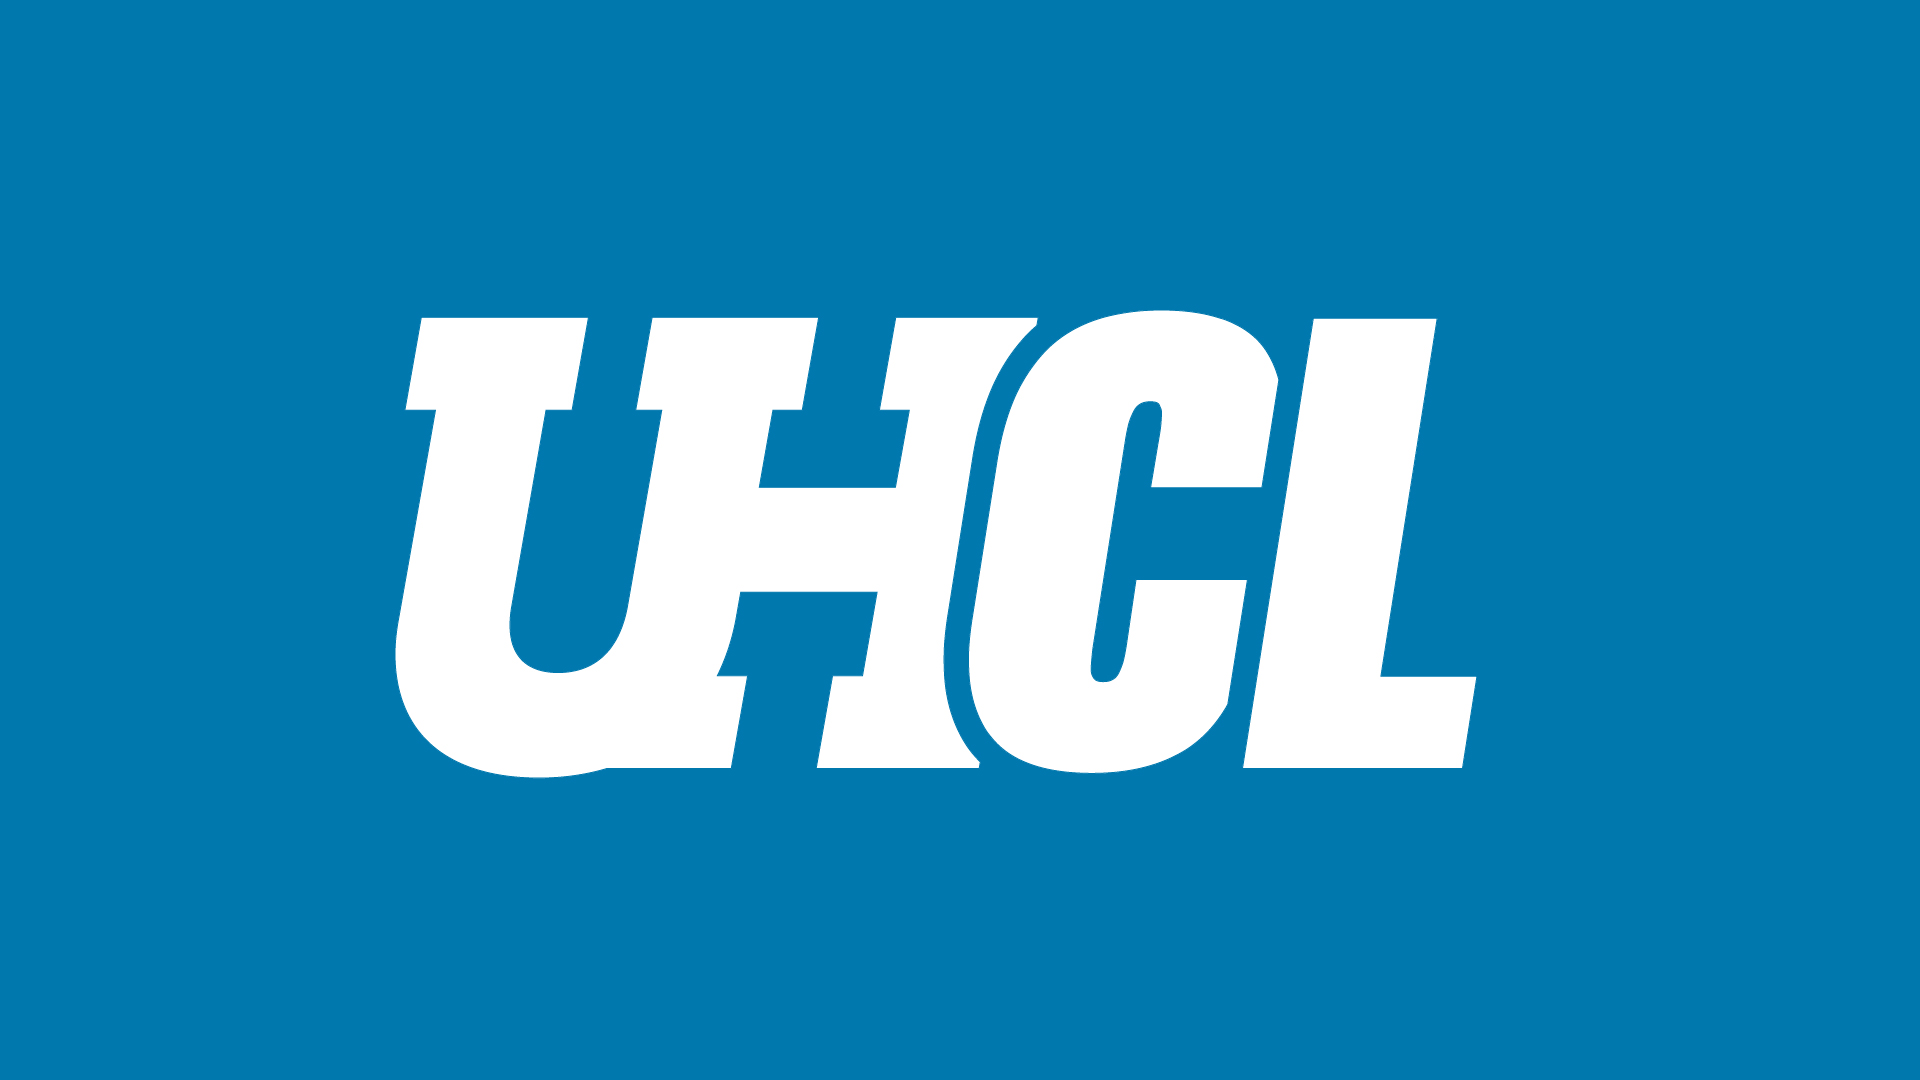 UHCL offenders program receives Regents' Academic Excellence Award